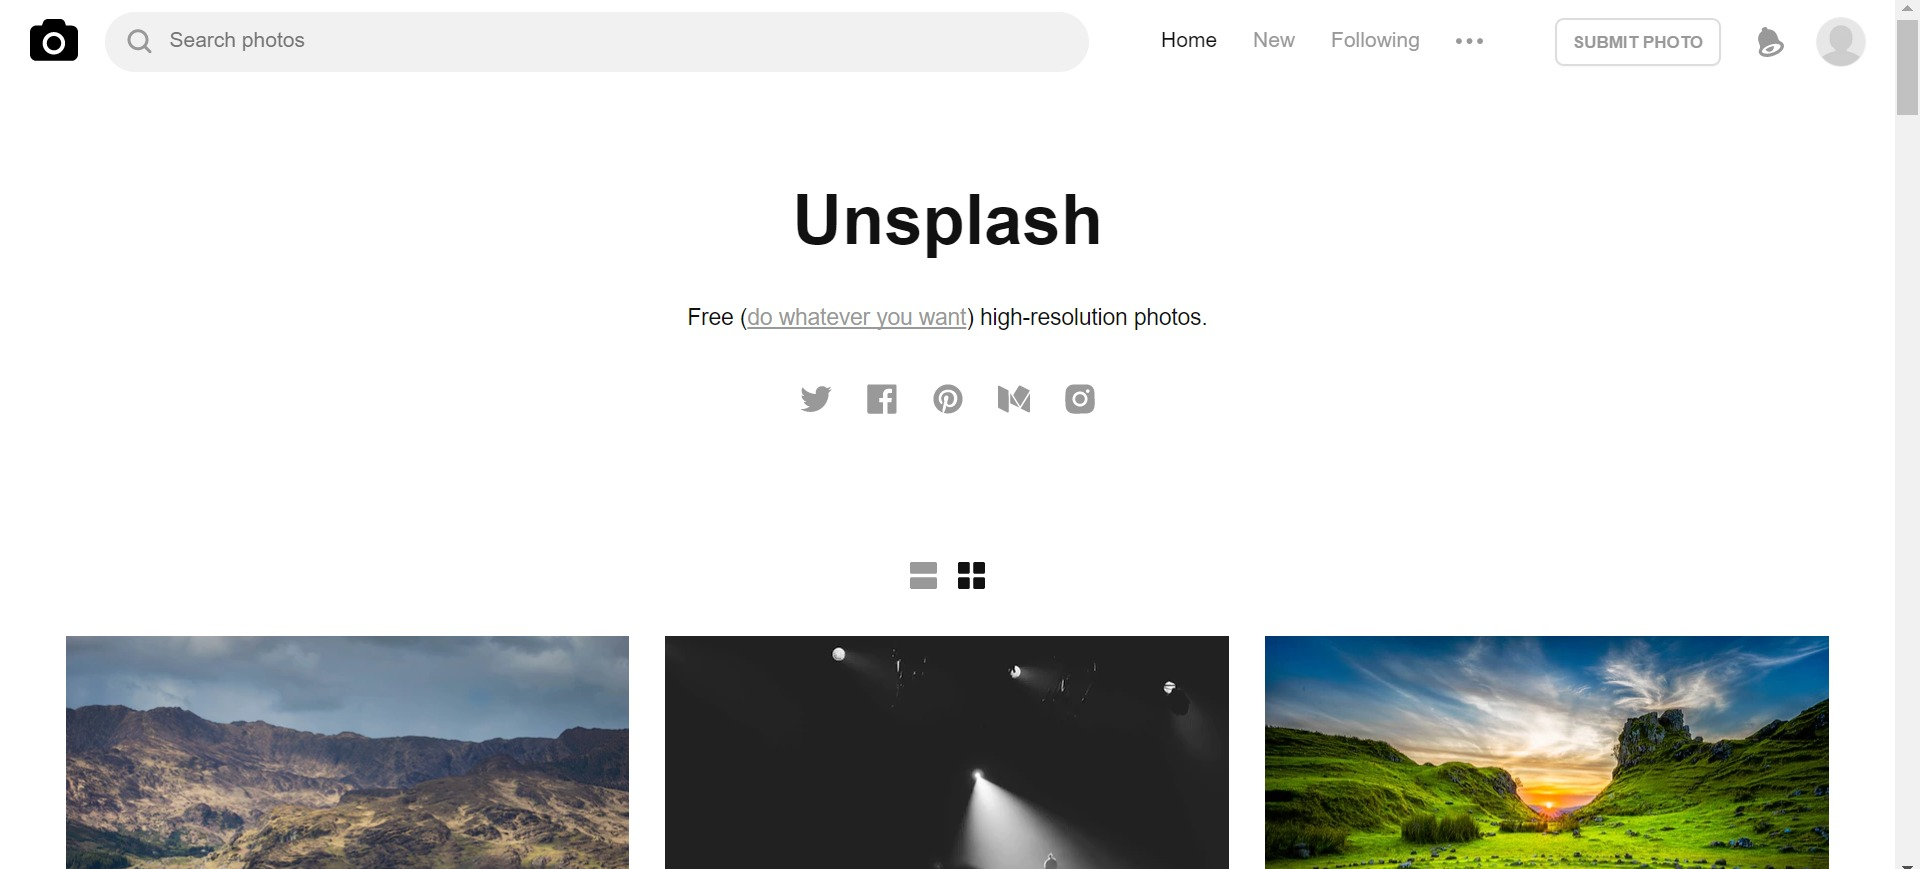 5 More Places to Find Free Images for Your Blog